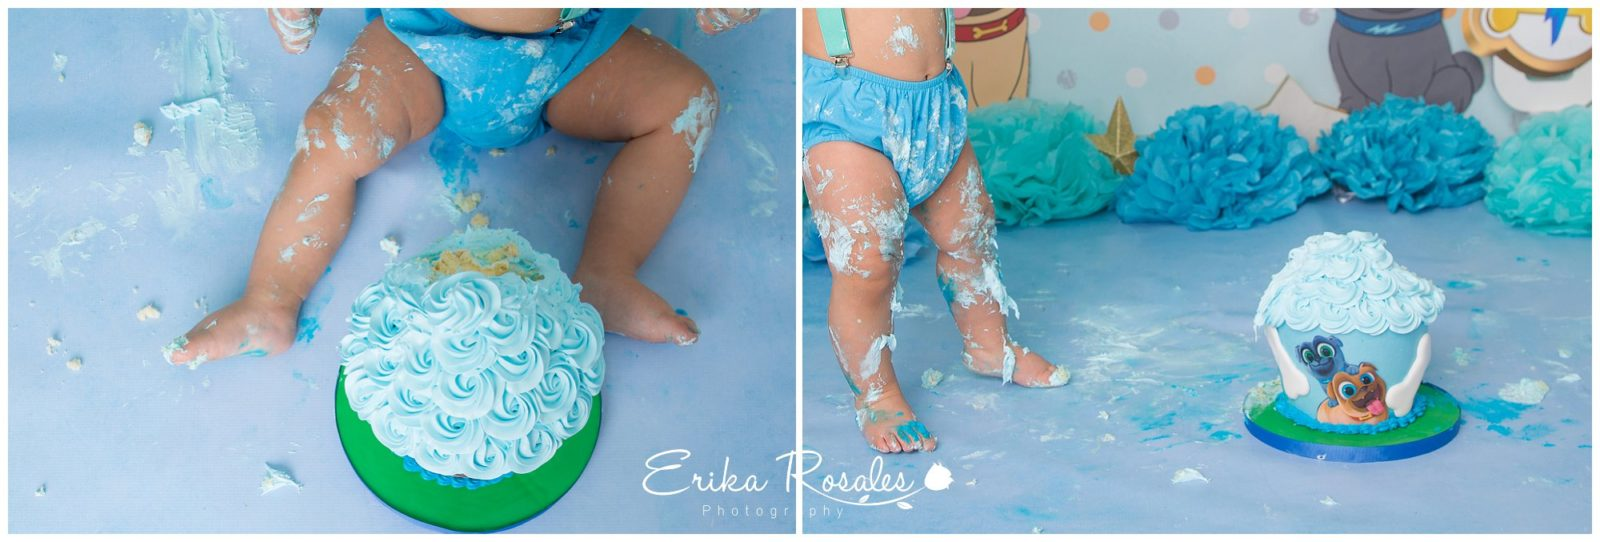 Fabulous Nyc Baby Photographer Archives Page 11 Of 25 Erika Rosales New Funny Birthday Cards Online Inifodamsfinfo